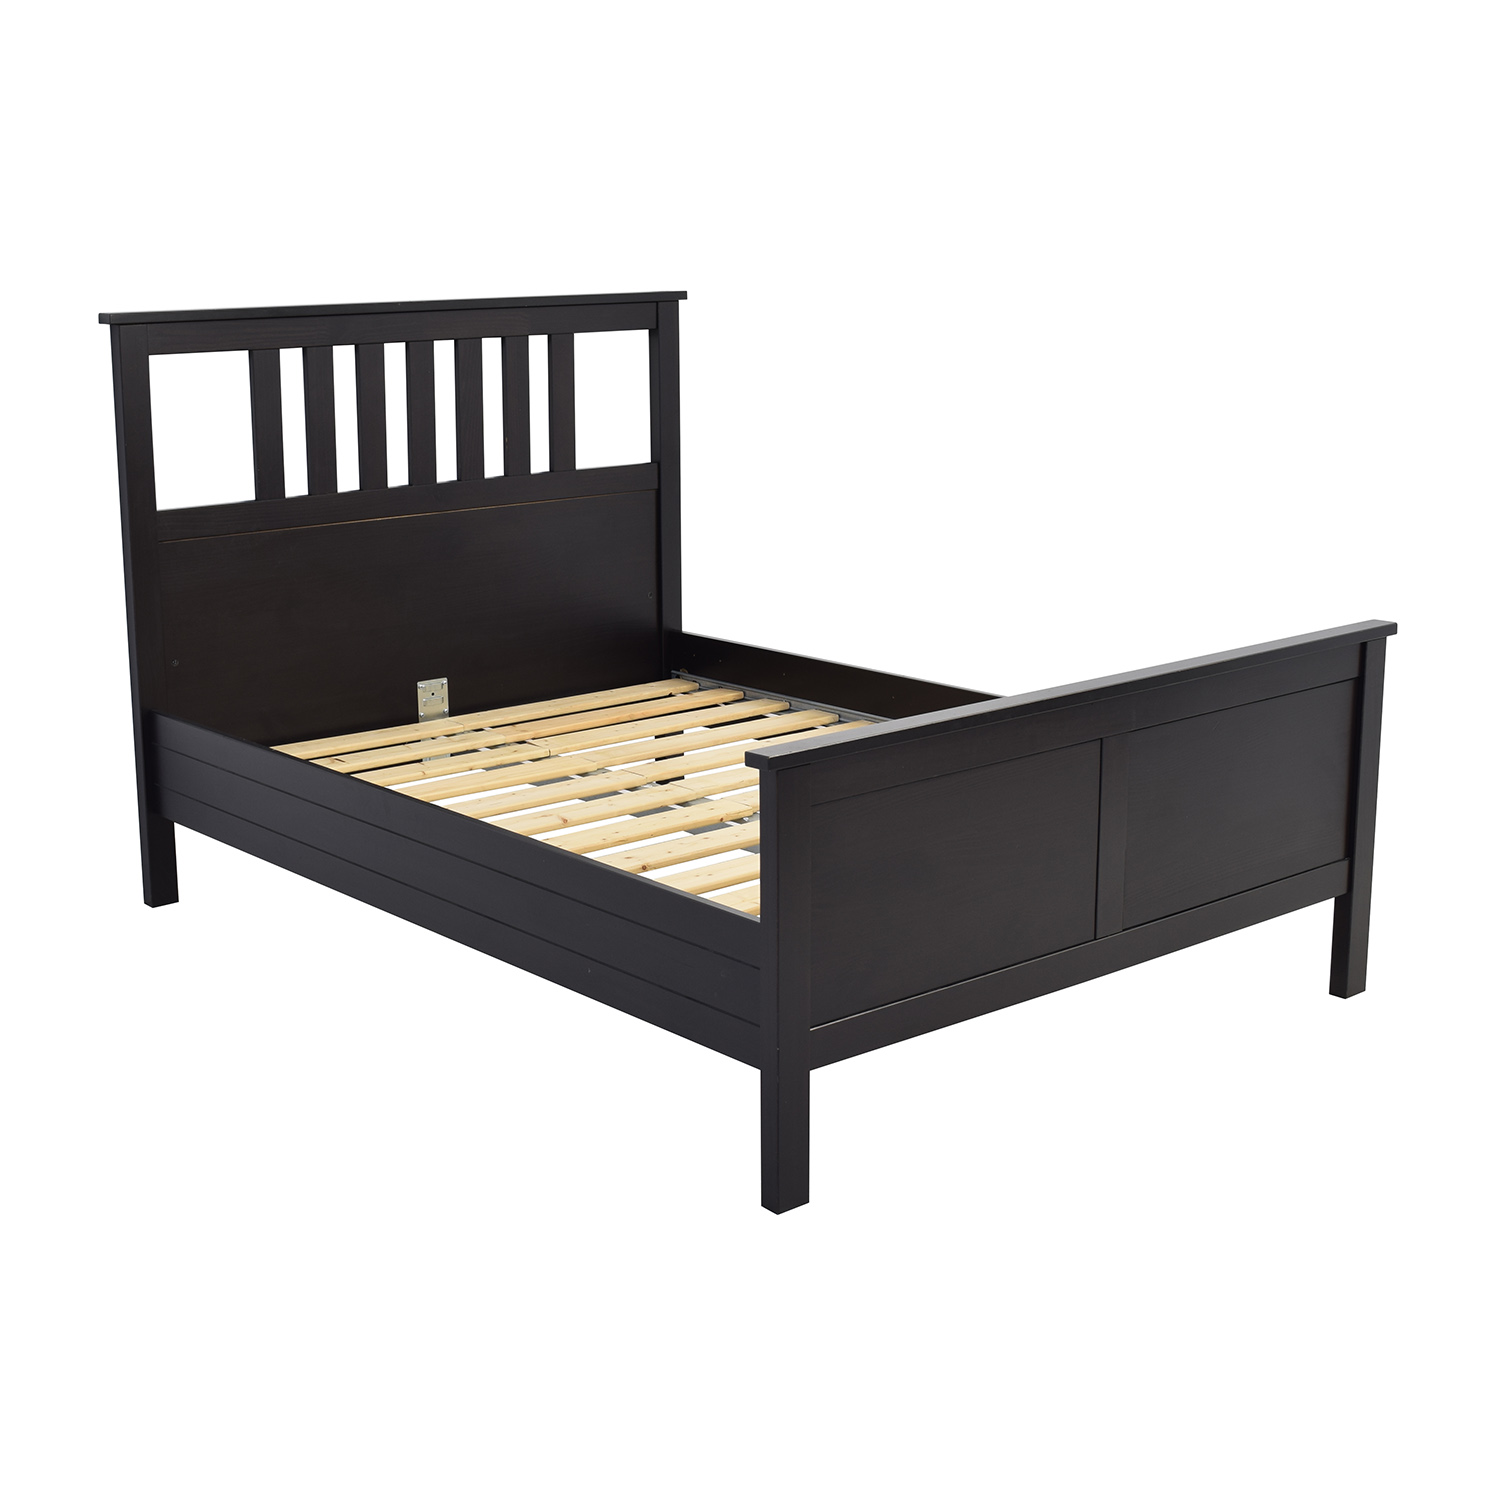 Ikea platform bed frame queen attractive design inspiration picture collection - Ikea wood futon frame ...